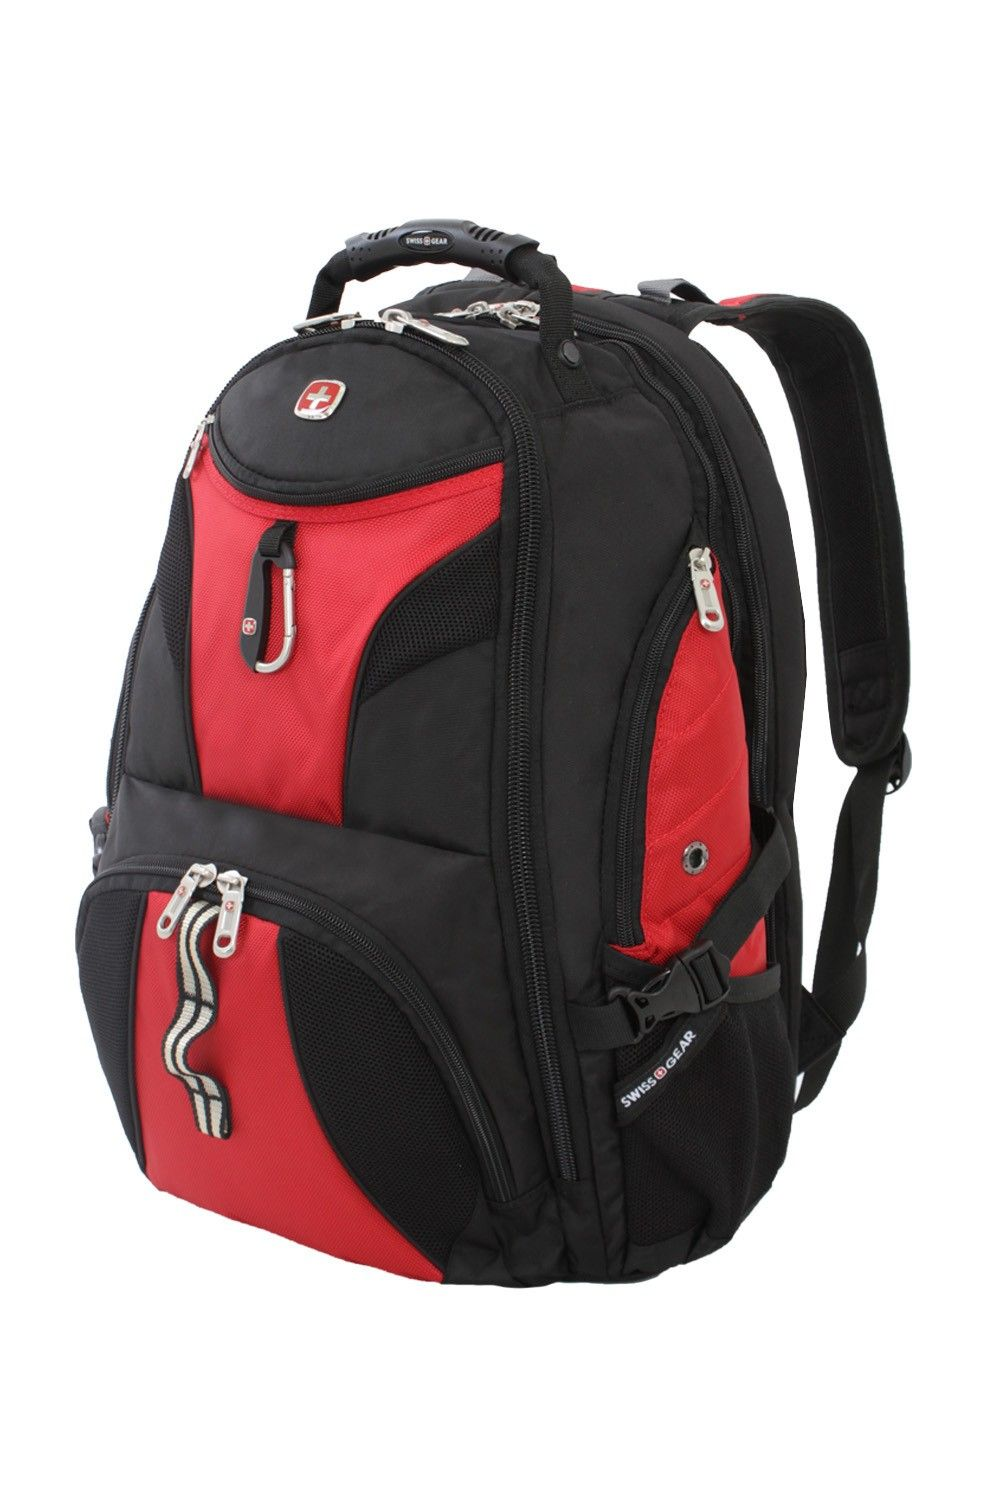 03d2c63e6aee Swiss Gear Backpack Airflow- Fenix Toulouse Handball